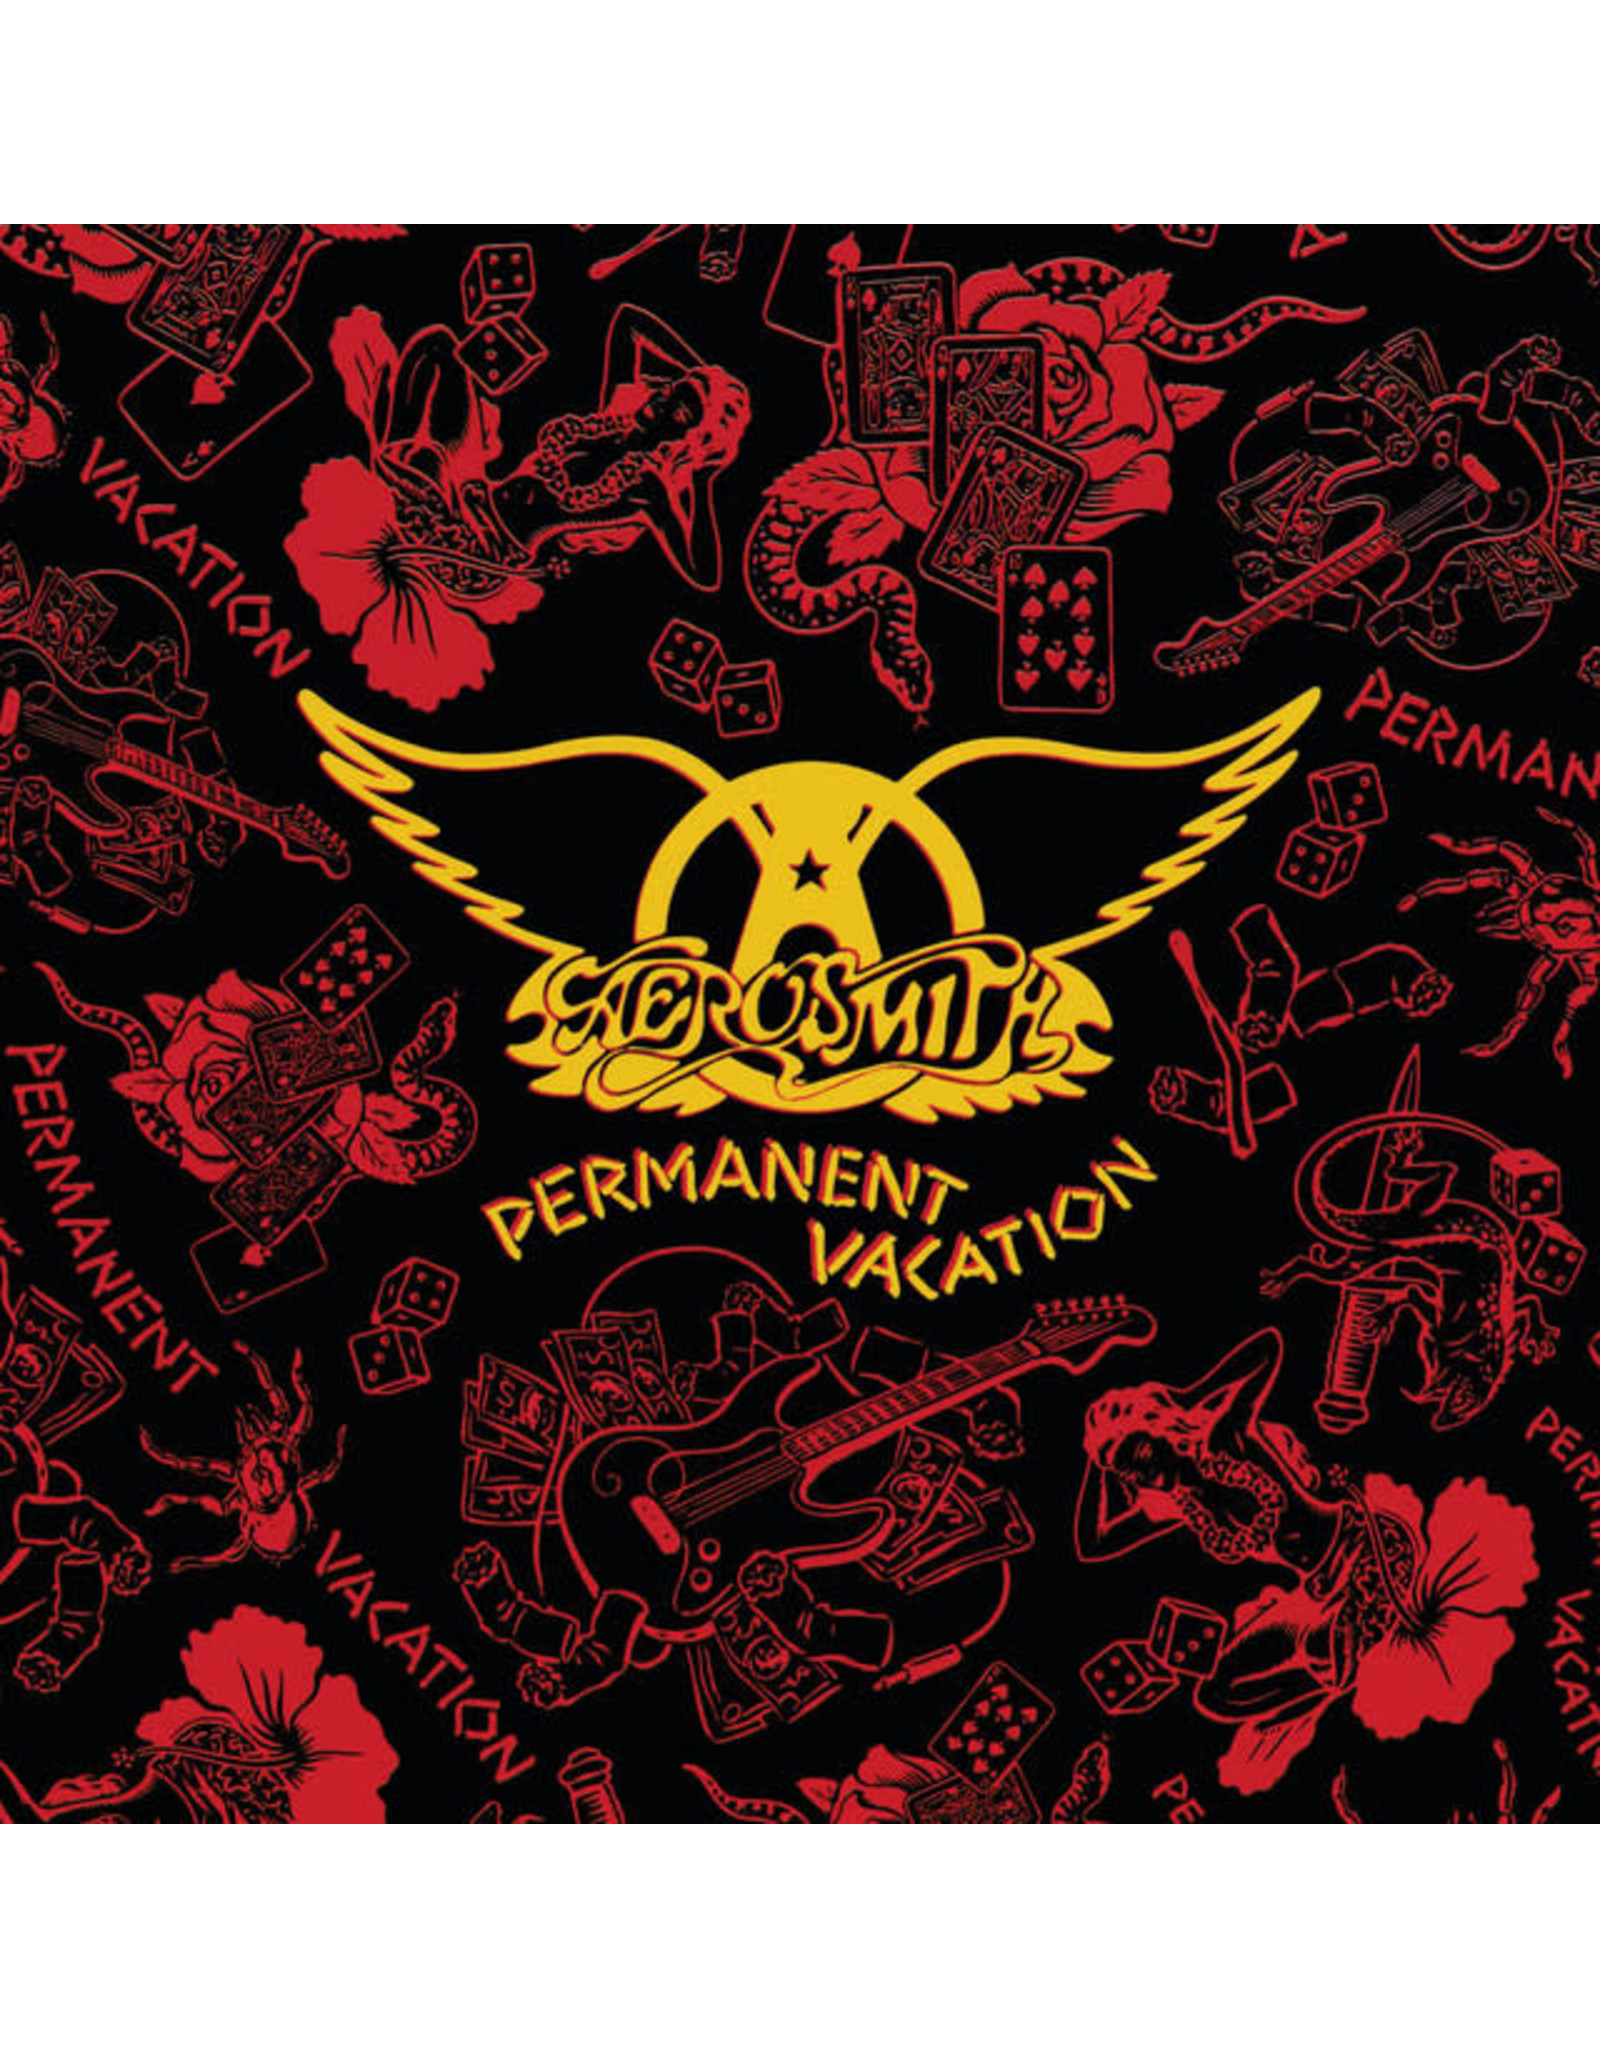 Vinyl Aerosmith - Permanent Vacation